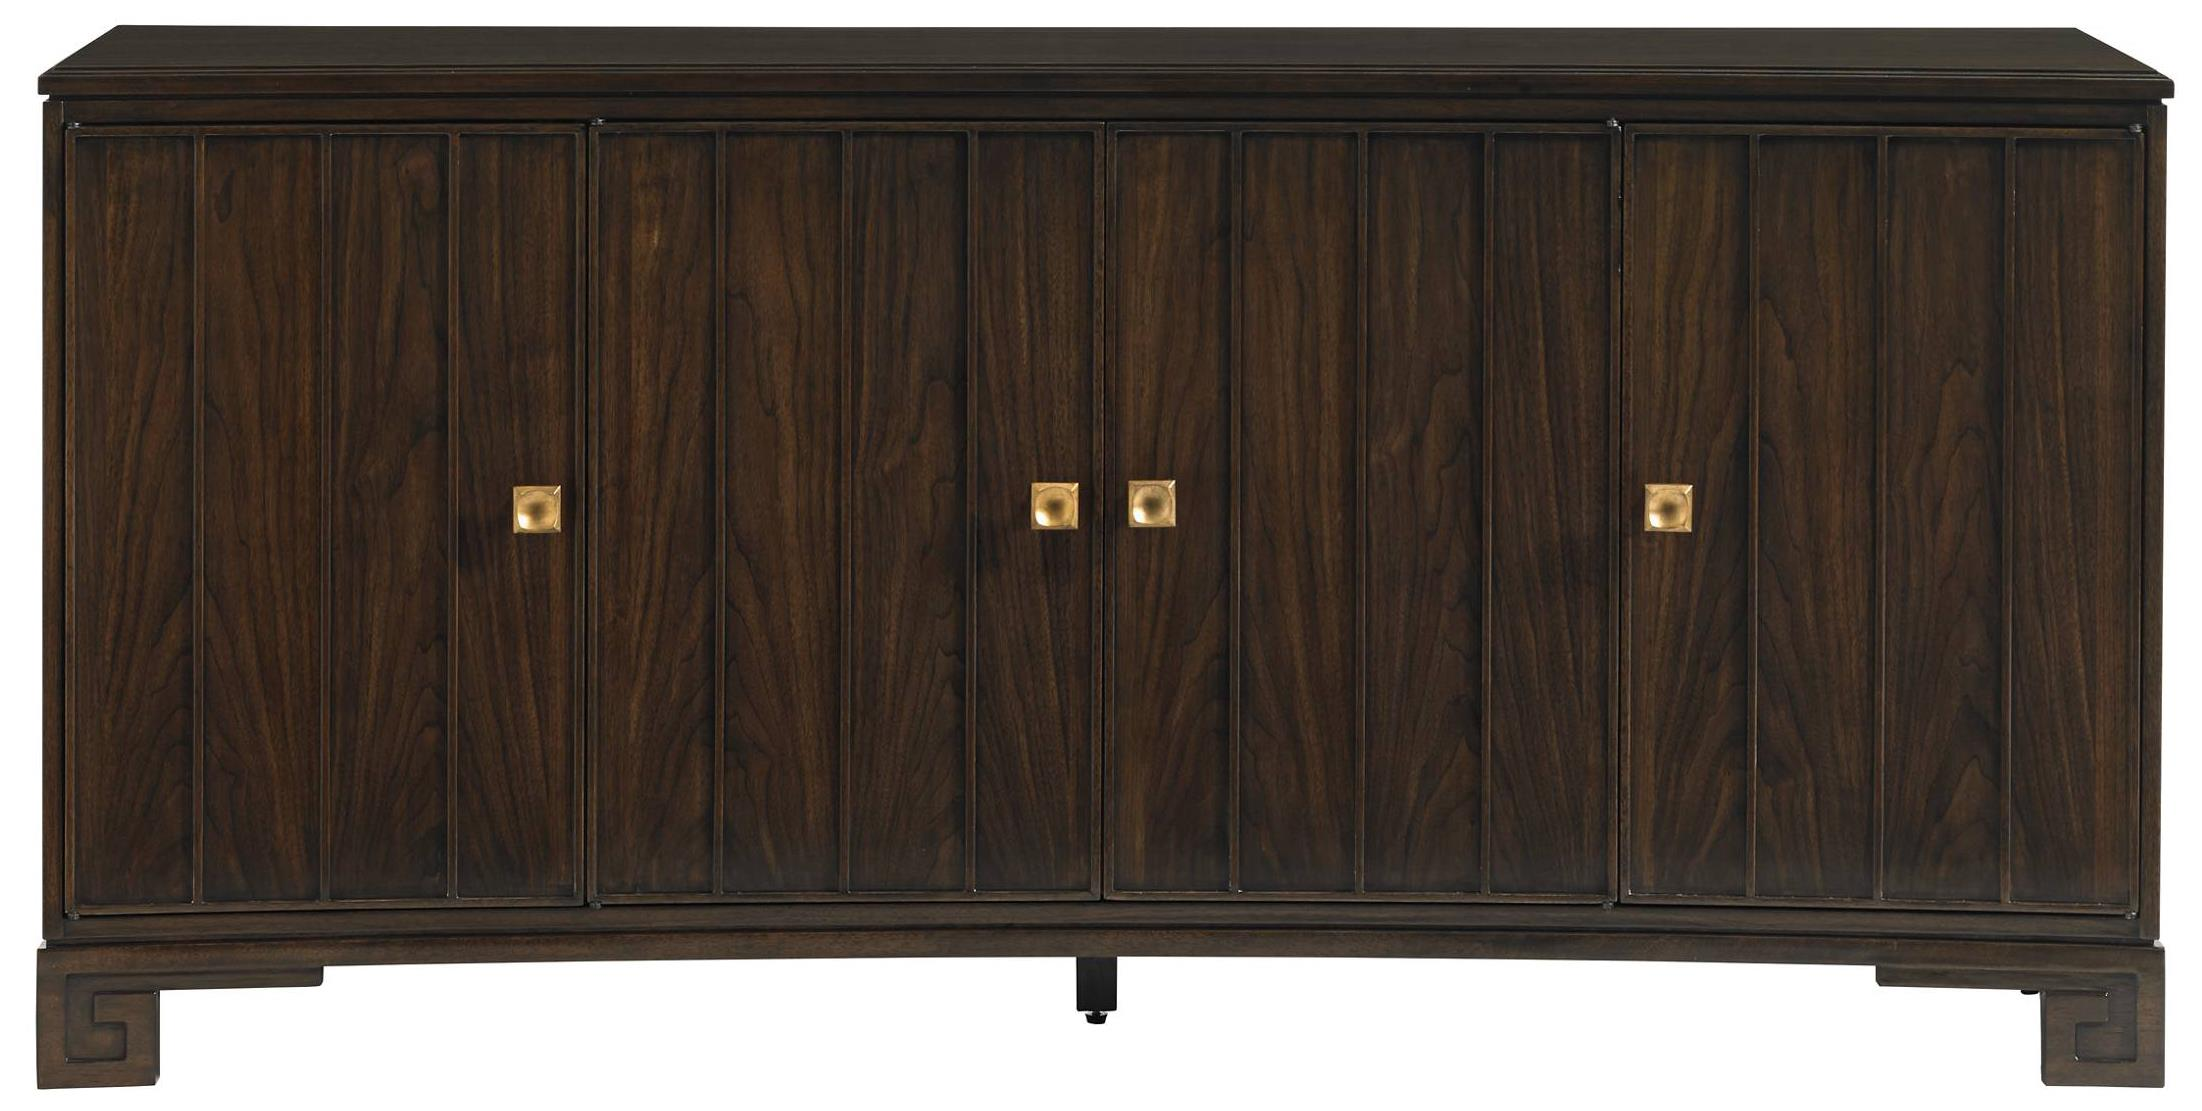 Stanley Furniture Crestaire Monterey Buffet - Item Number: 436-11-05